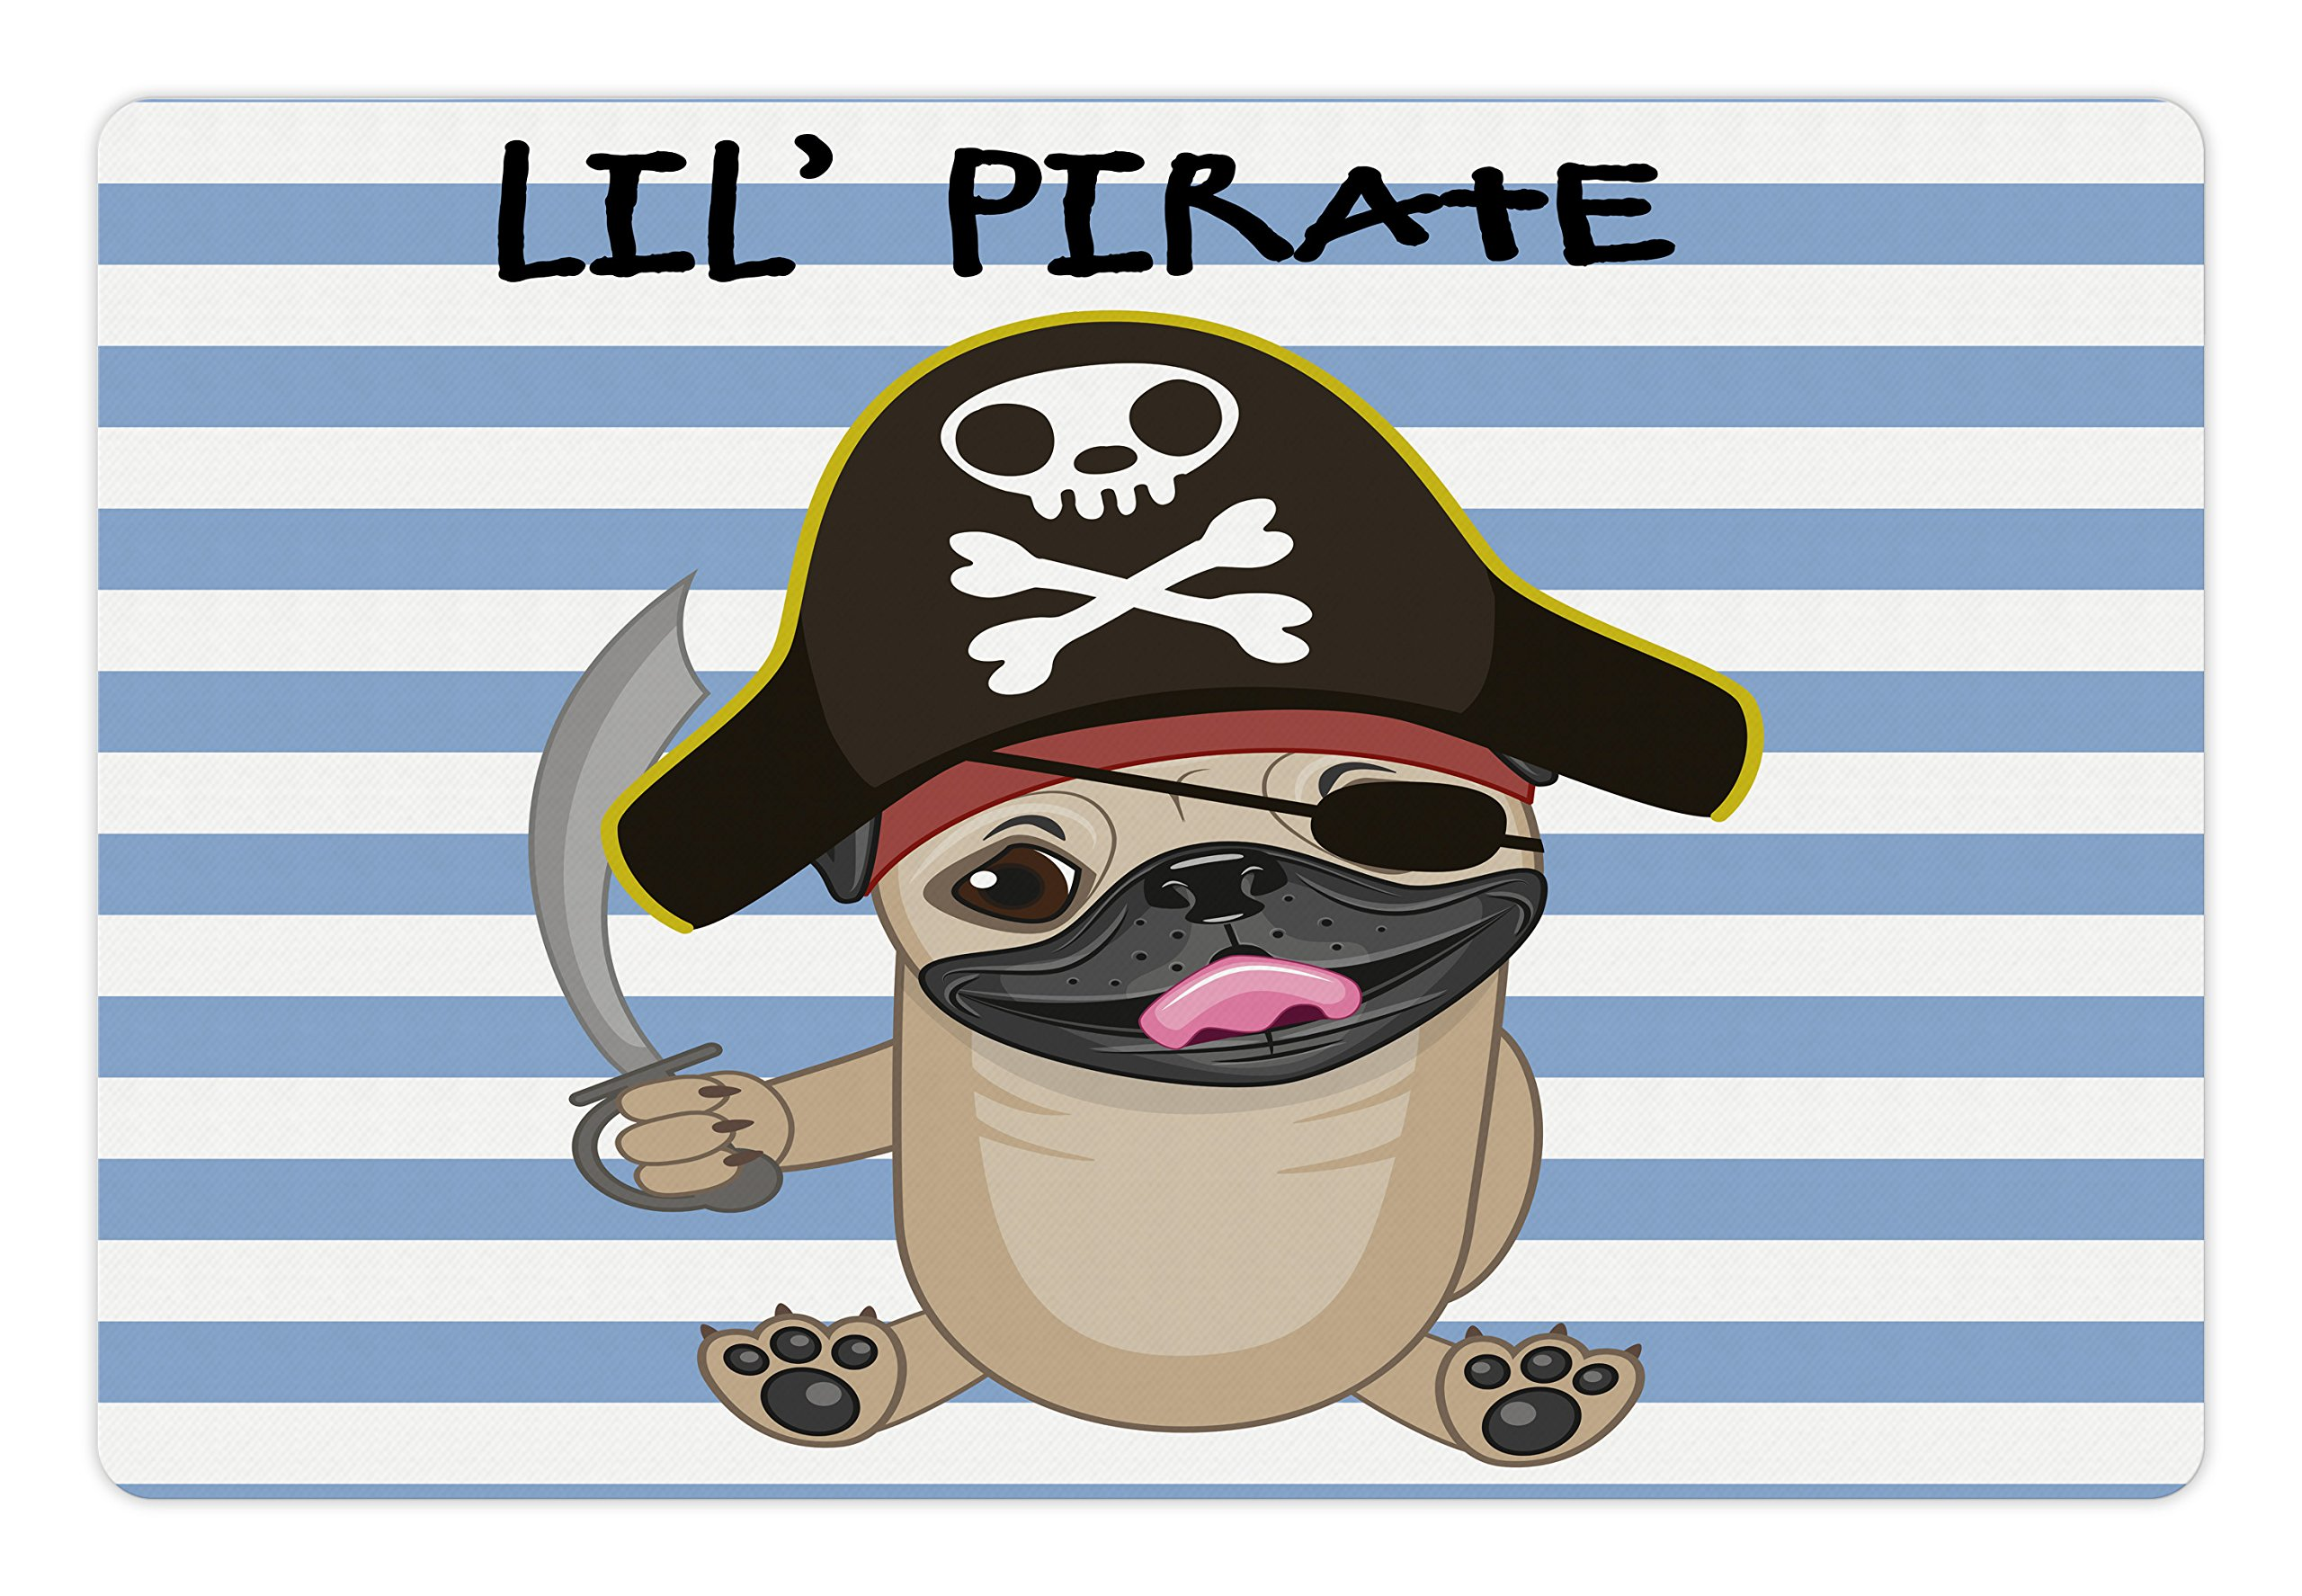 Lunarable Pirate Pet Mat for Food and Water, Buccaneer Dog in Cartoon Style Costume Lil Pirate Striped Backdrop Funny Animal, Rectangle Non-Slip Rubber Mat for Dogs and Cats, Multicolor by Lunarable (Image #1)